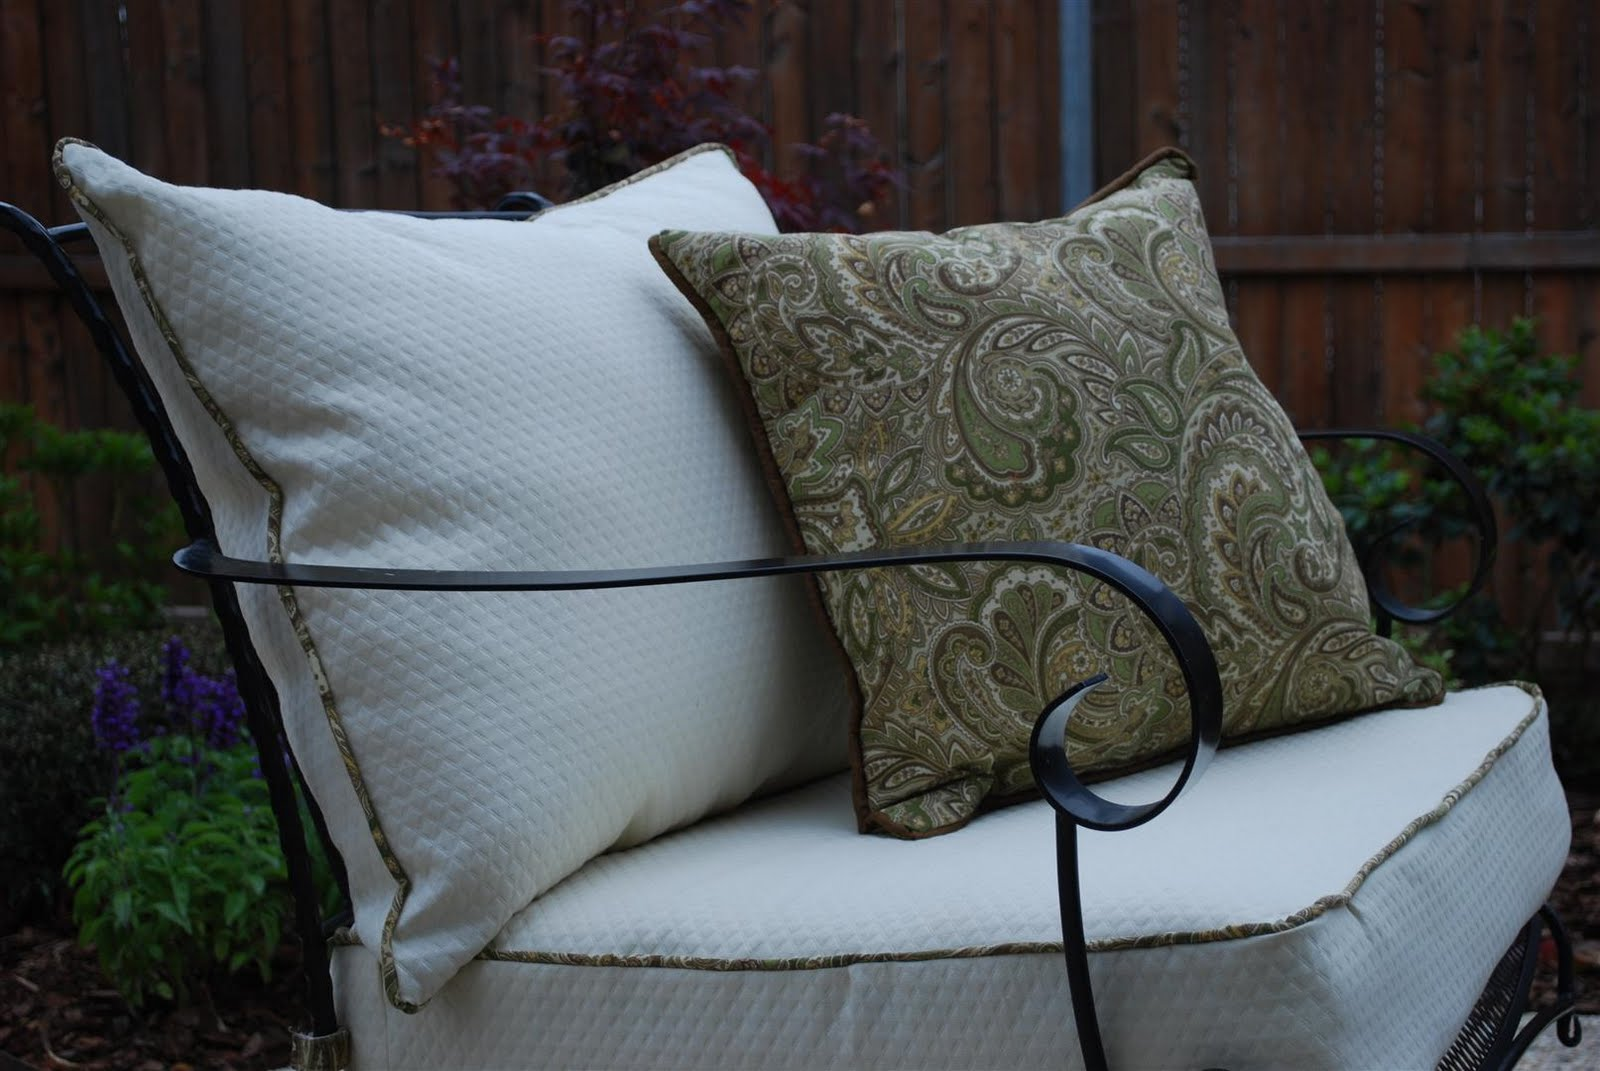 craftyc0rn3r: Patio Furniture Reupholstering